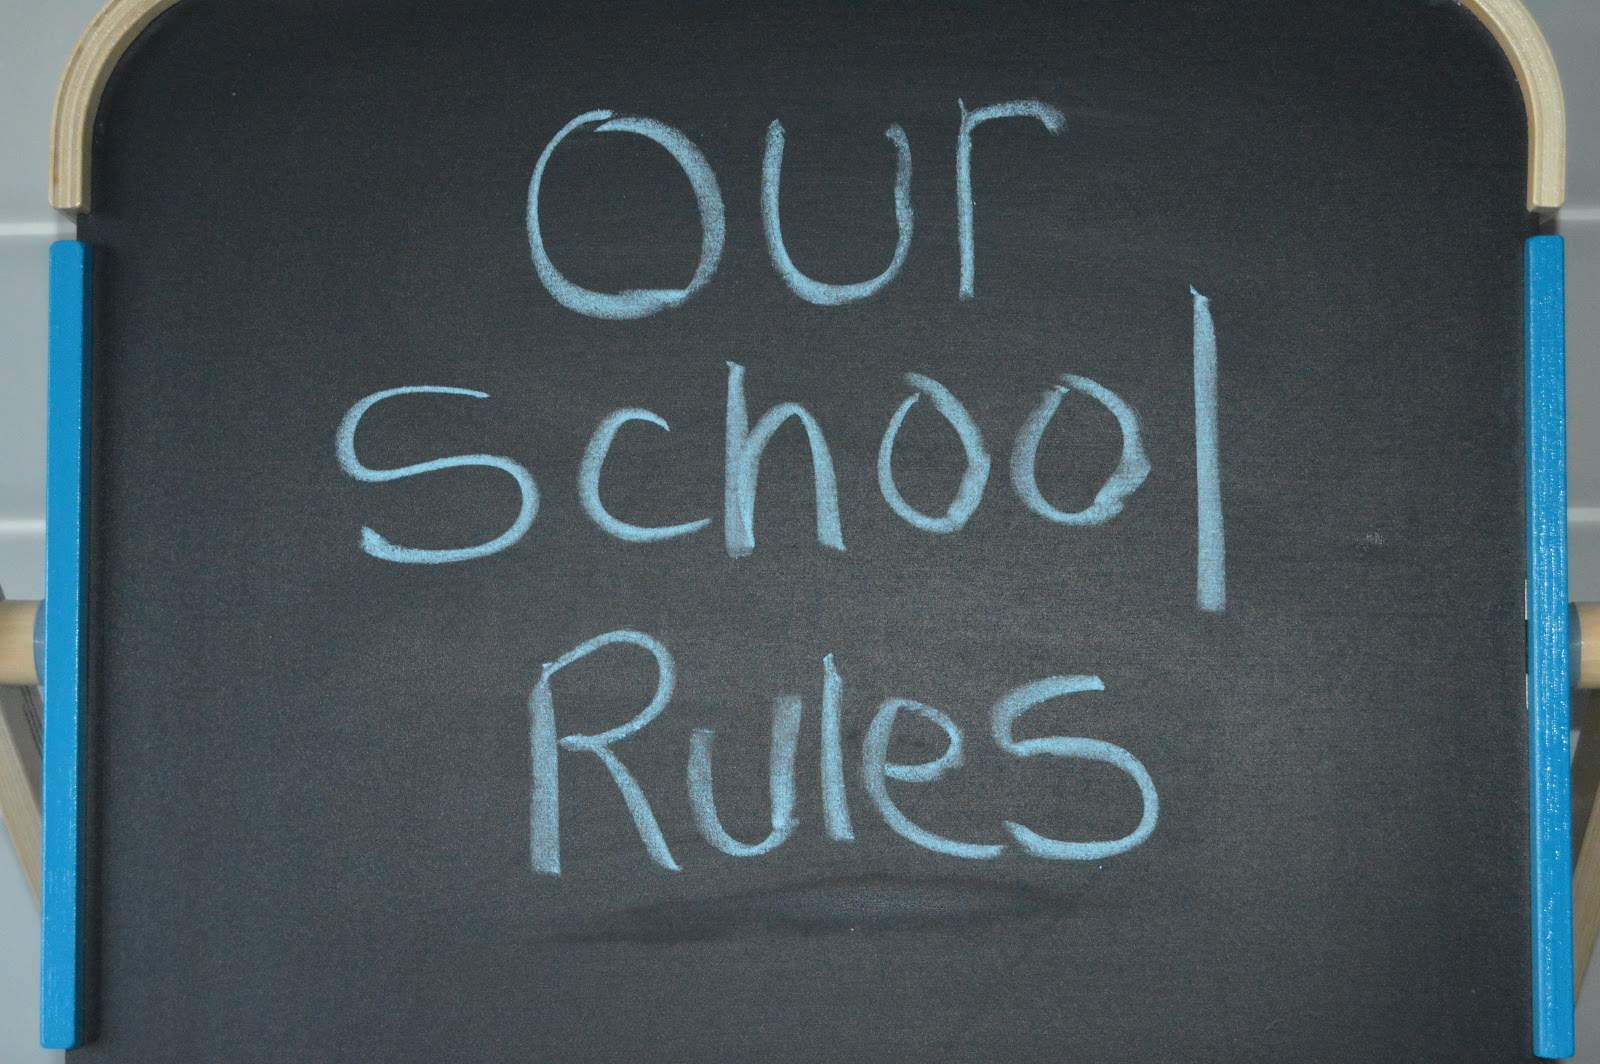 blackboard with 'Our School Rules' written on